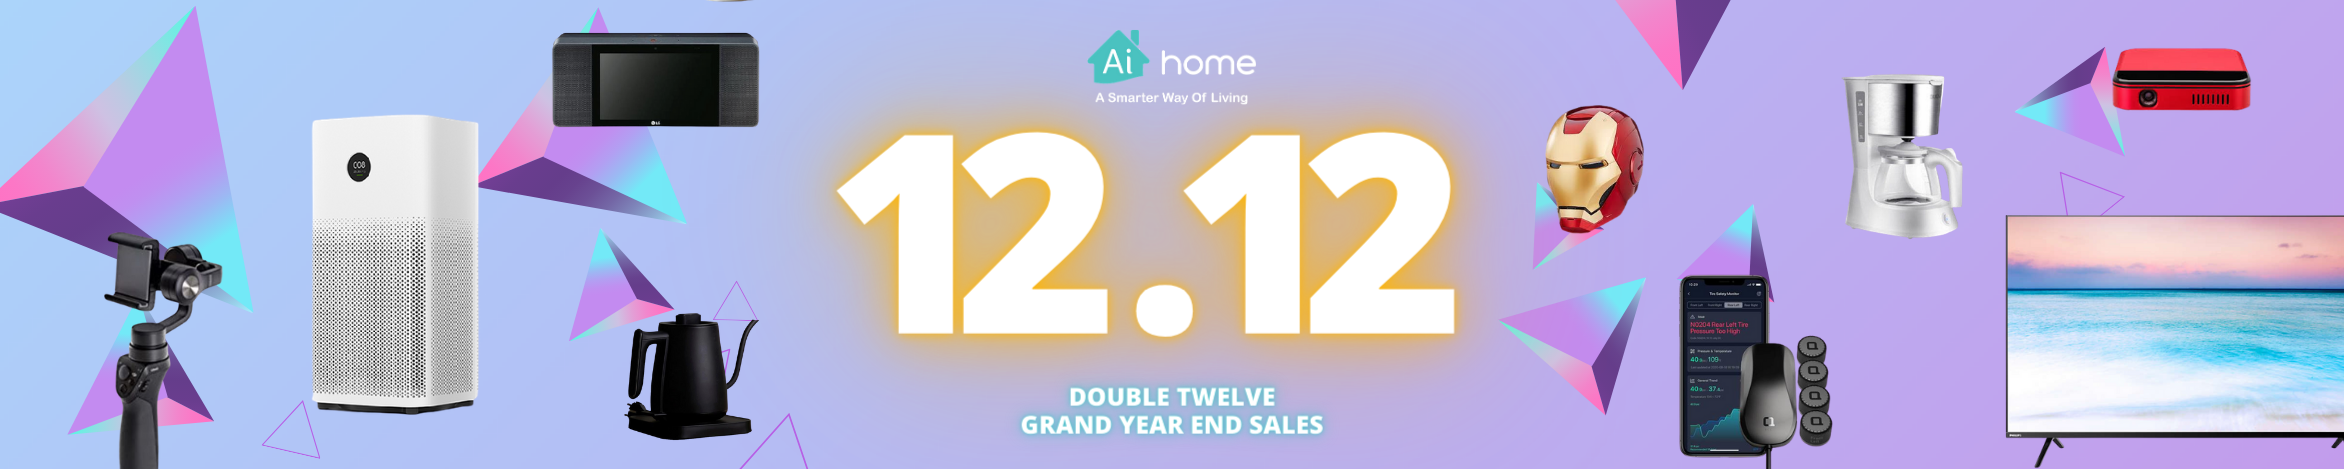 Website DOUBLE TWELVE GRAND YEAR END SALES-2